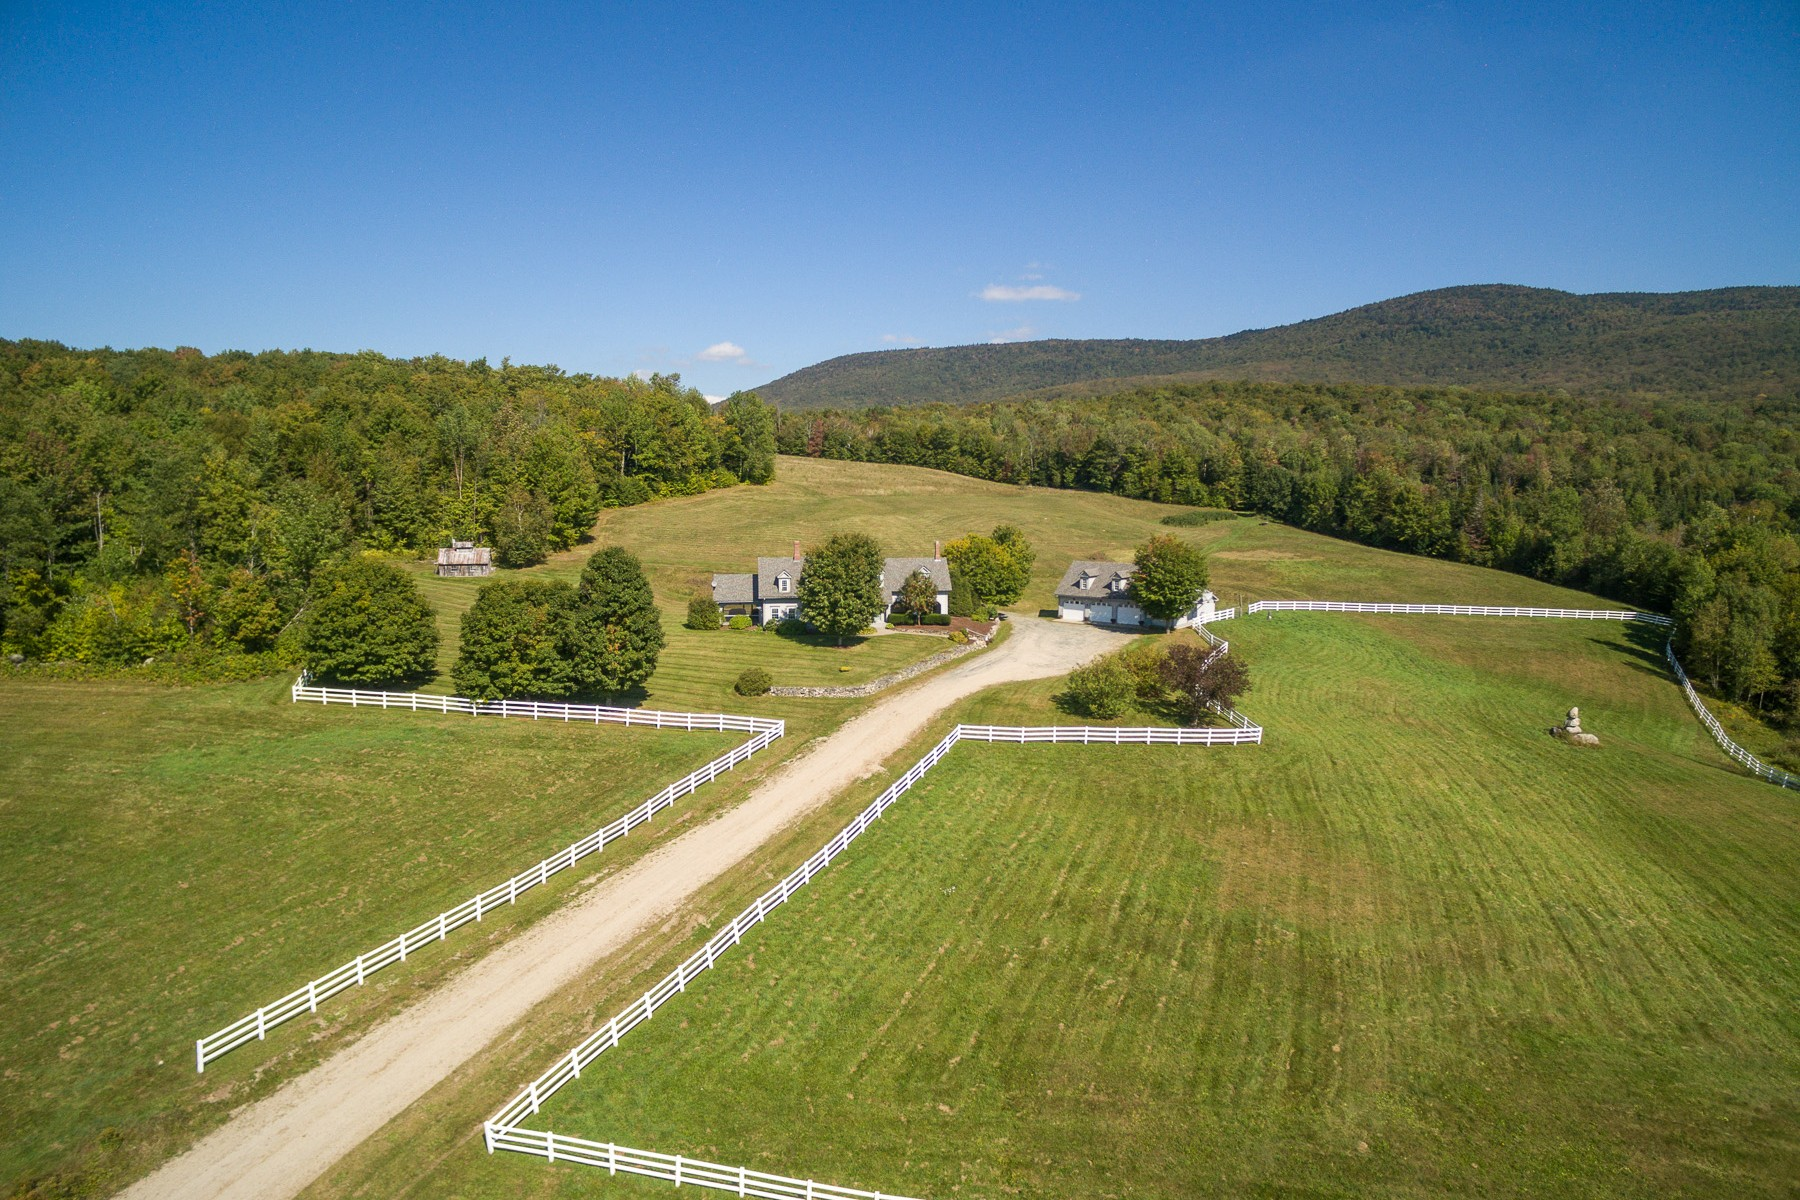 Single Family Home for Sale at Flower Brook Meadows 637 Flower Brook, Burke, Vermont, 05871 United States